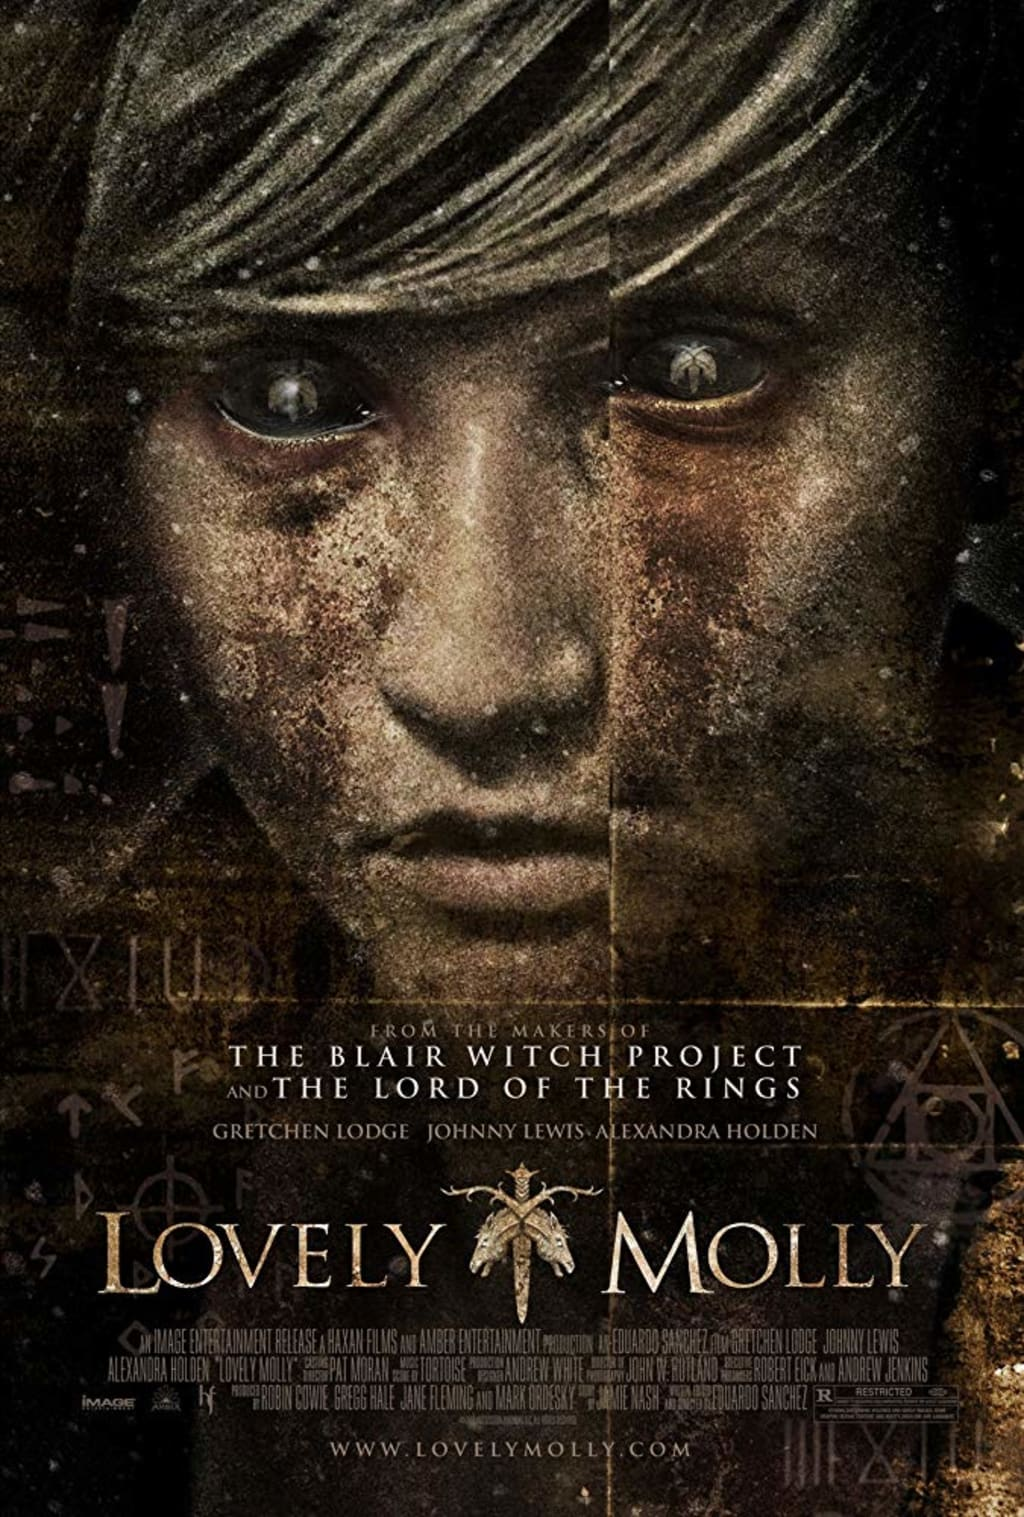 Reed Alexander's Horror Review of 'Lovely Molly' (2011)